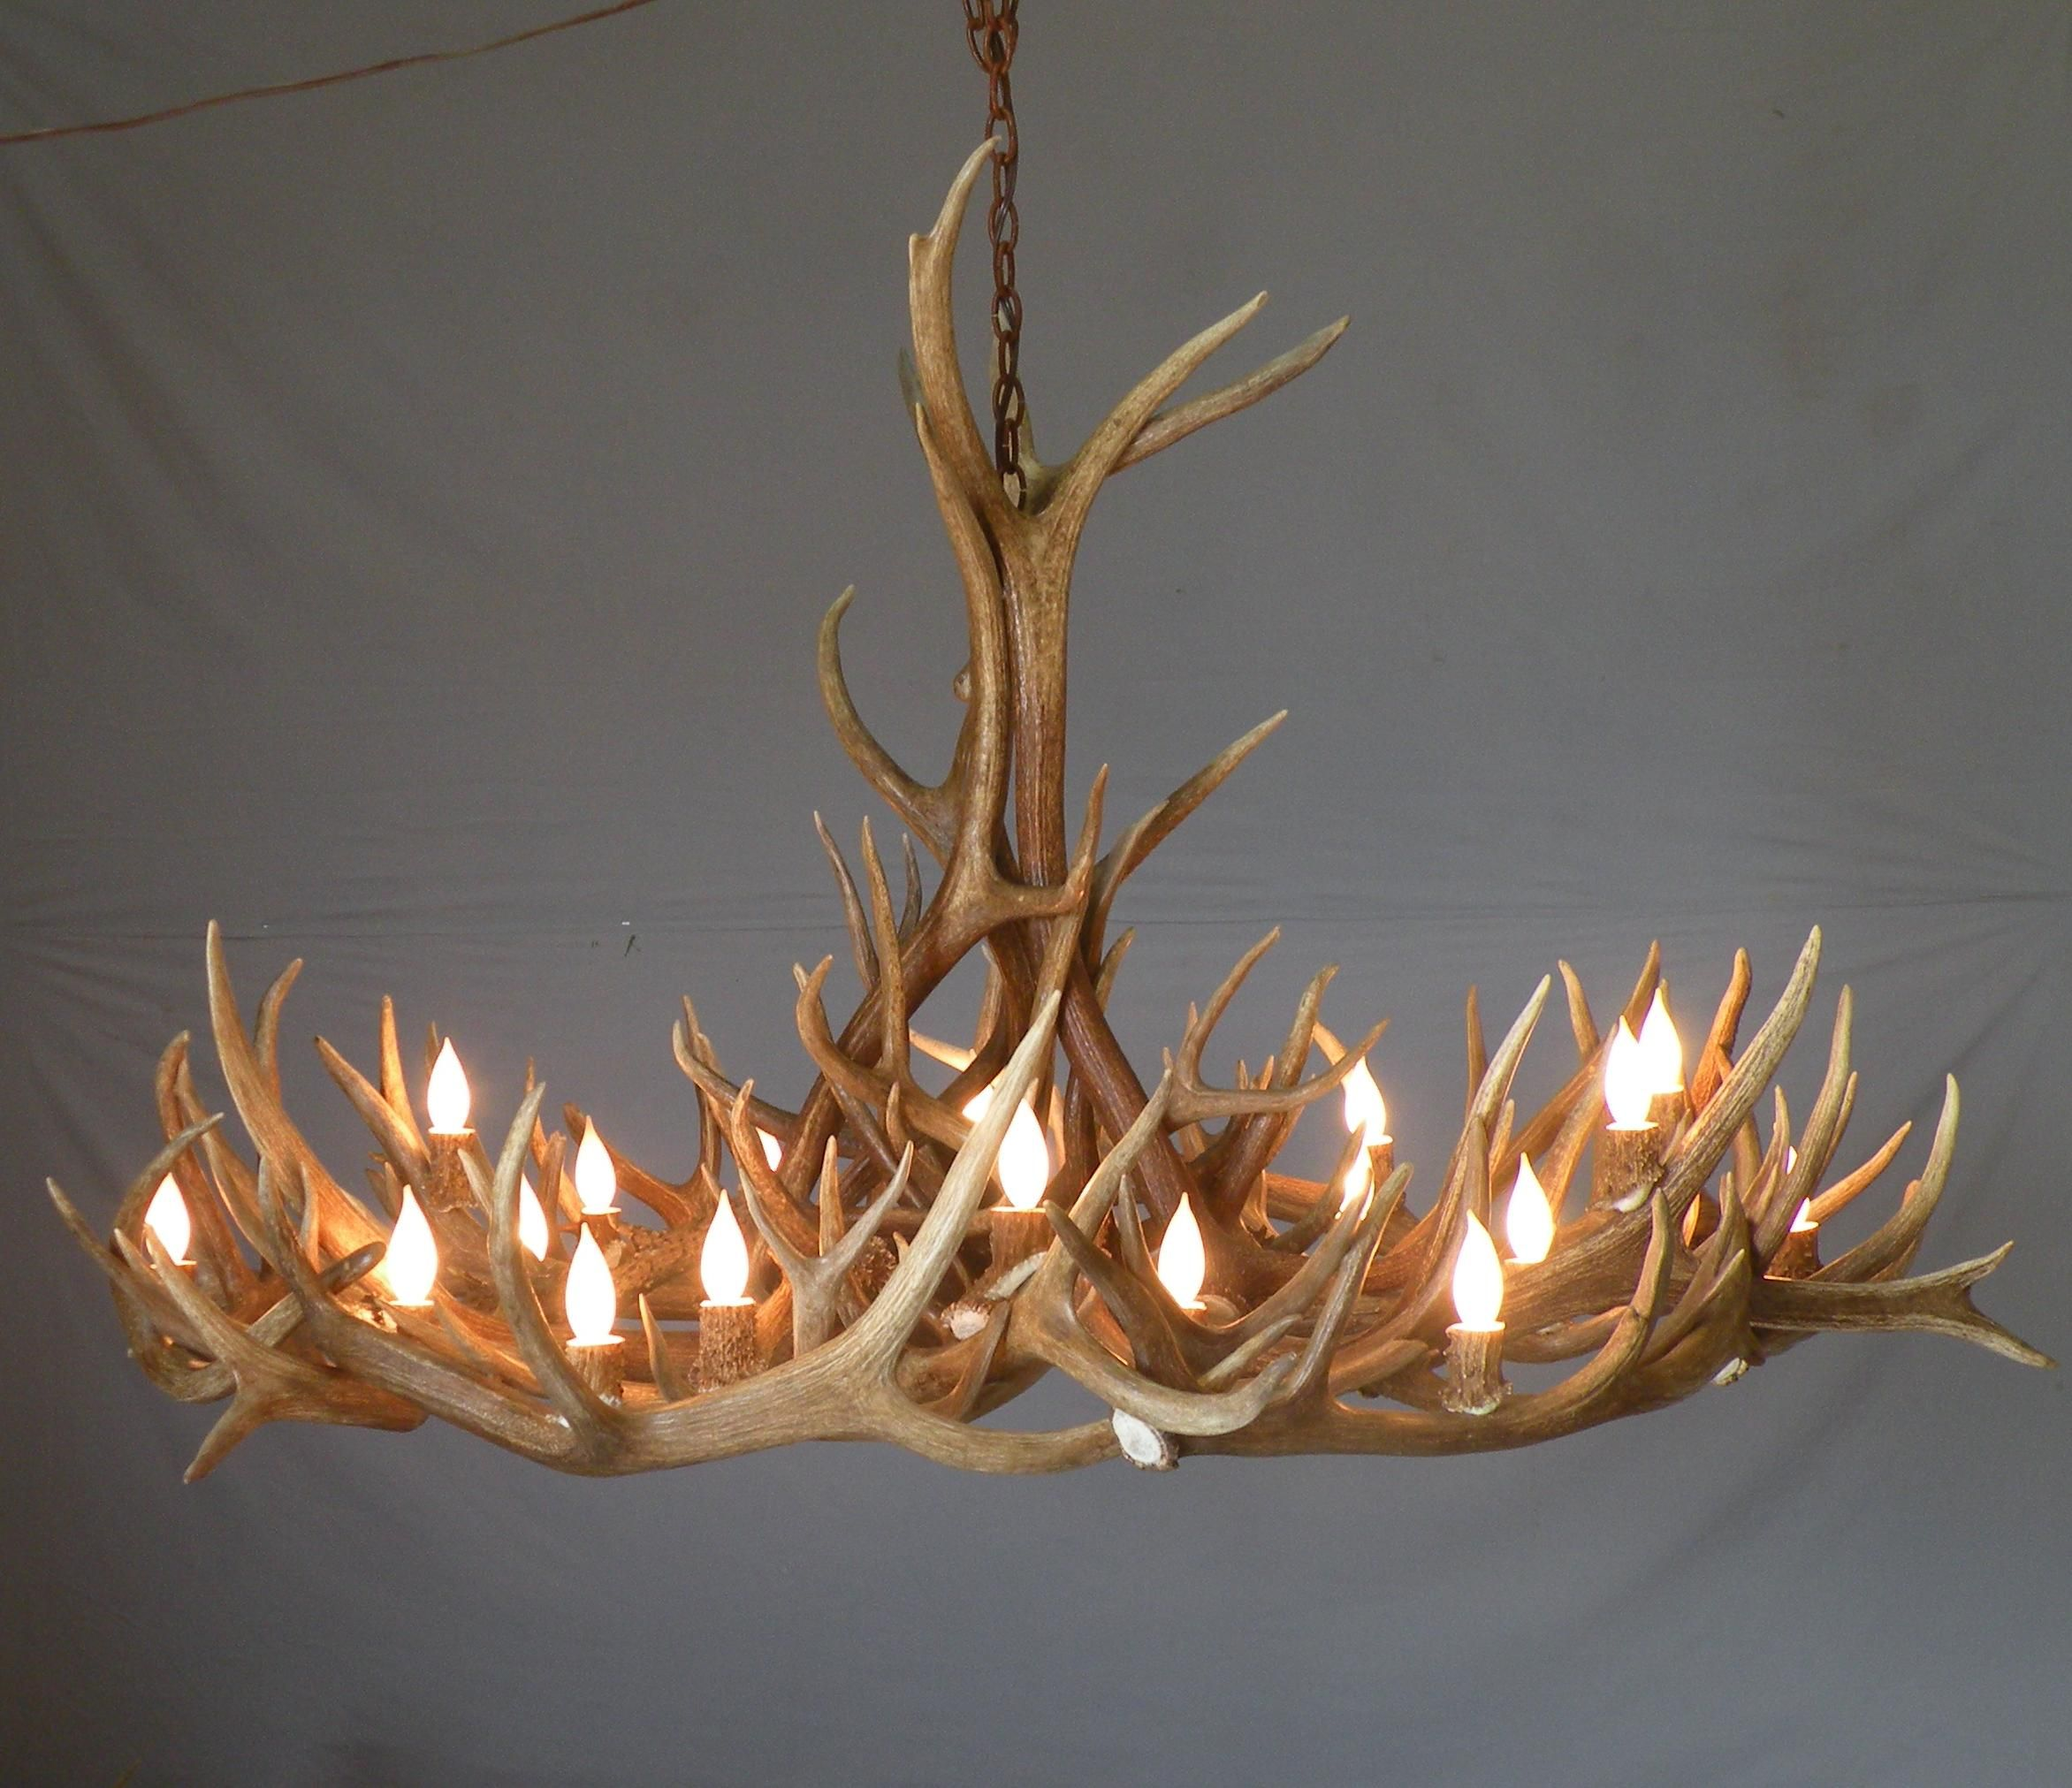 Antler Chandeliers by WDC returning artist Peak Antlers – Elk Antler Chandelier